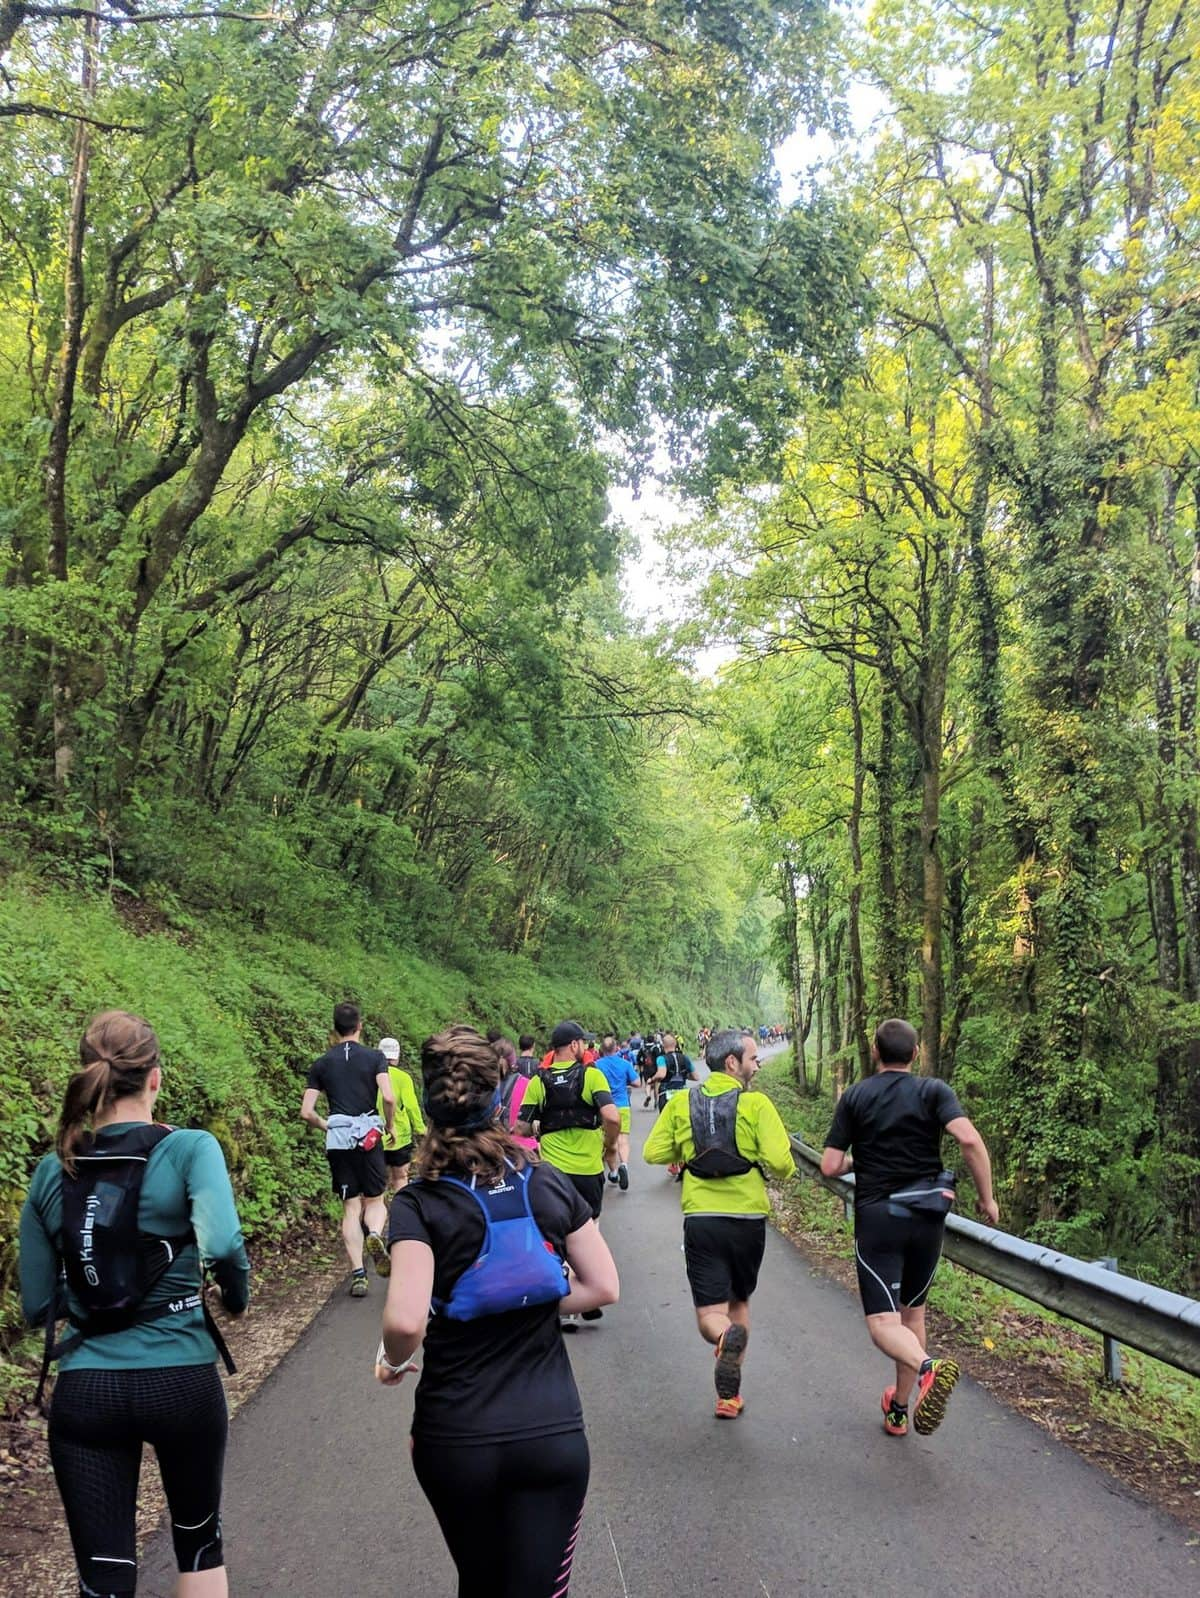 Trail runners in the forest in the spring at the Trail des Forts de Besaçon 2019